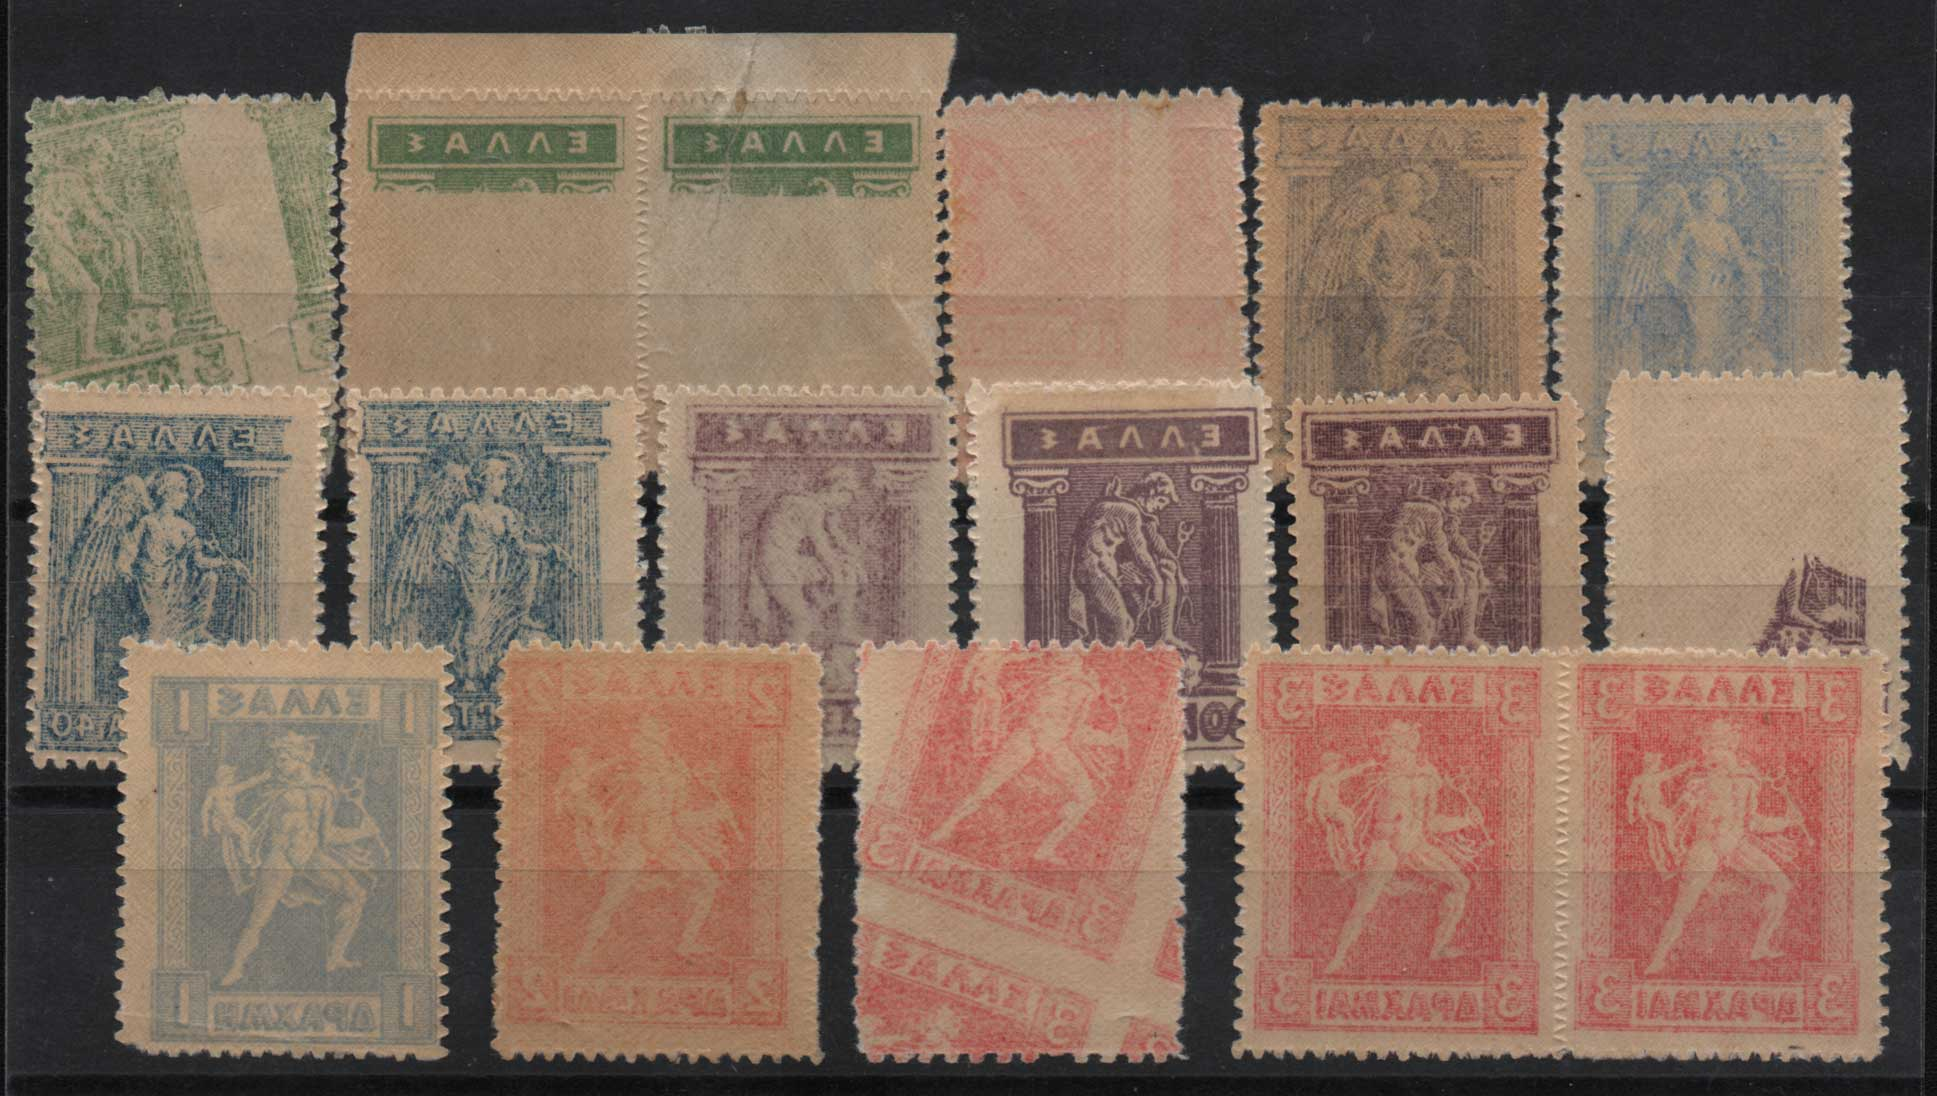 Lot 616 - -  1911 - 1923 ENGRAVED & LITHOGRAPHIC ISSUES -  Athens Auctions Public Auction 83 General Stamp Sale